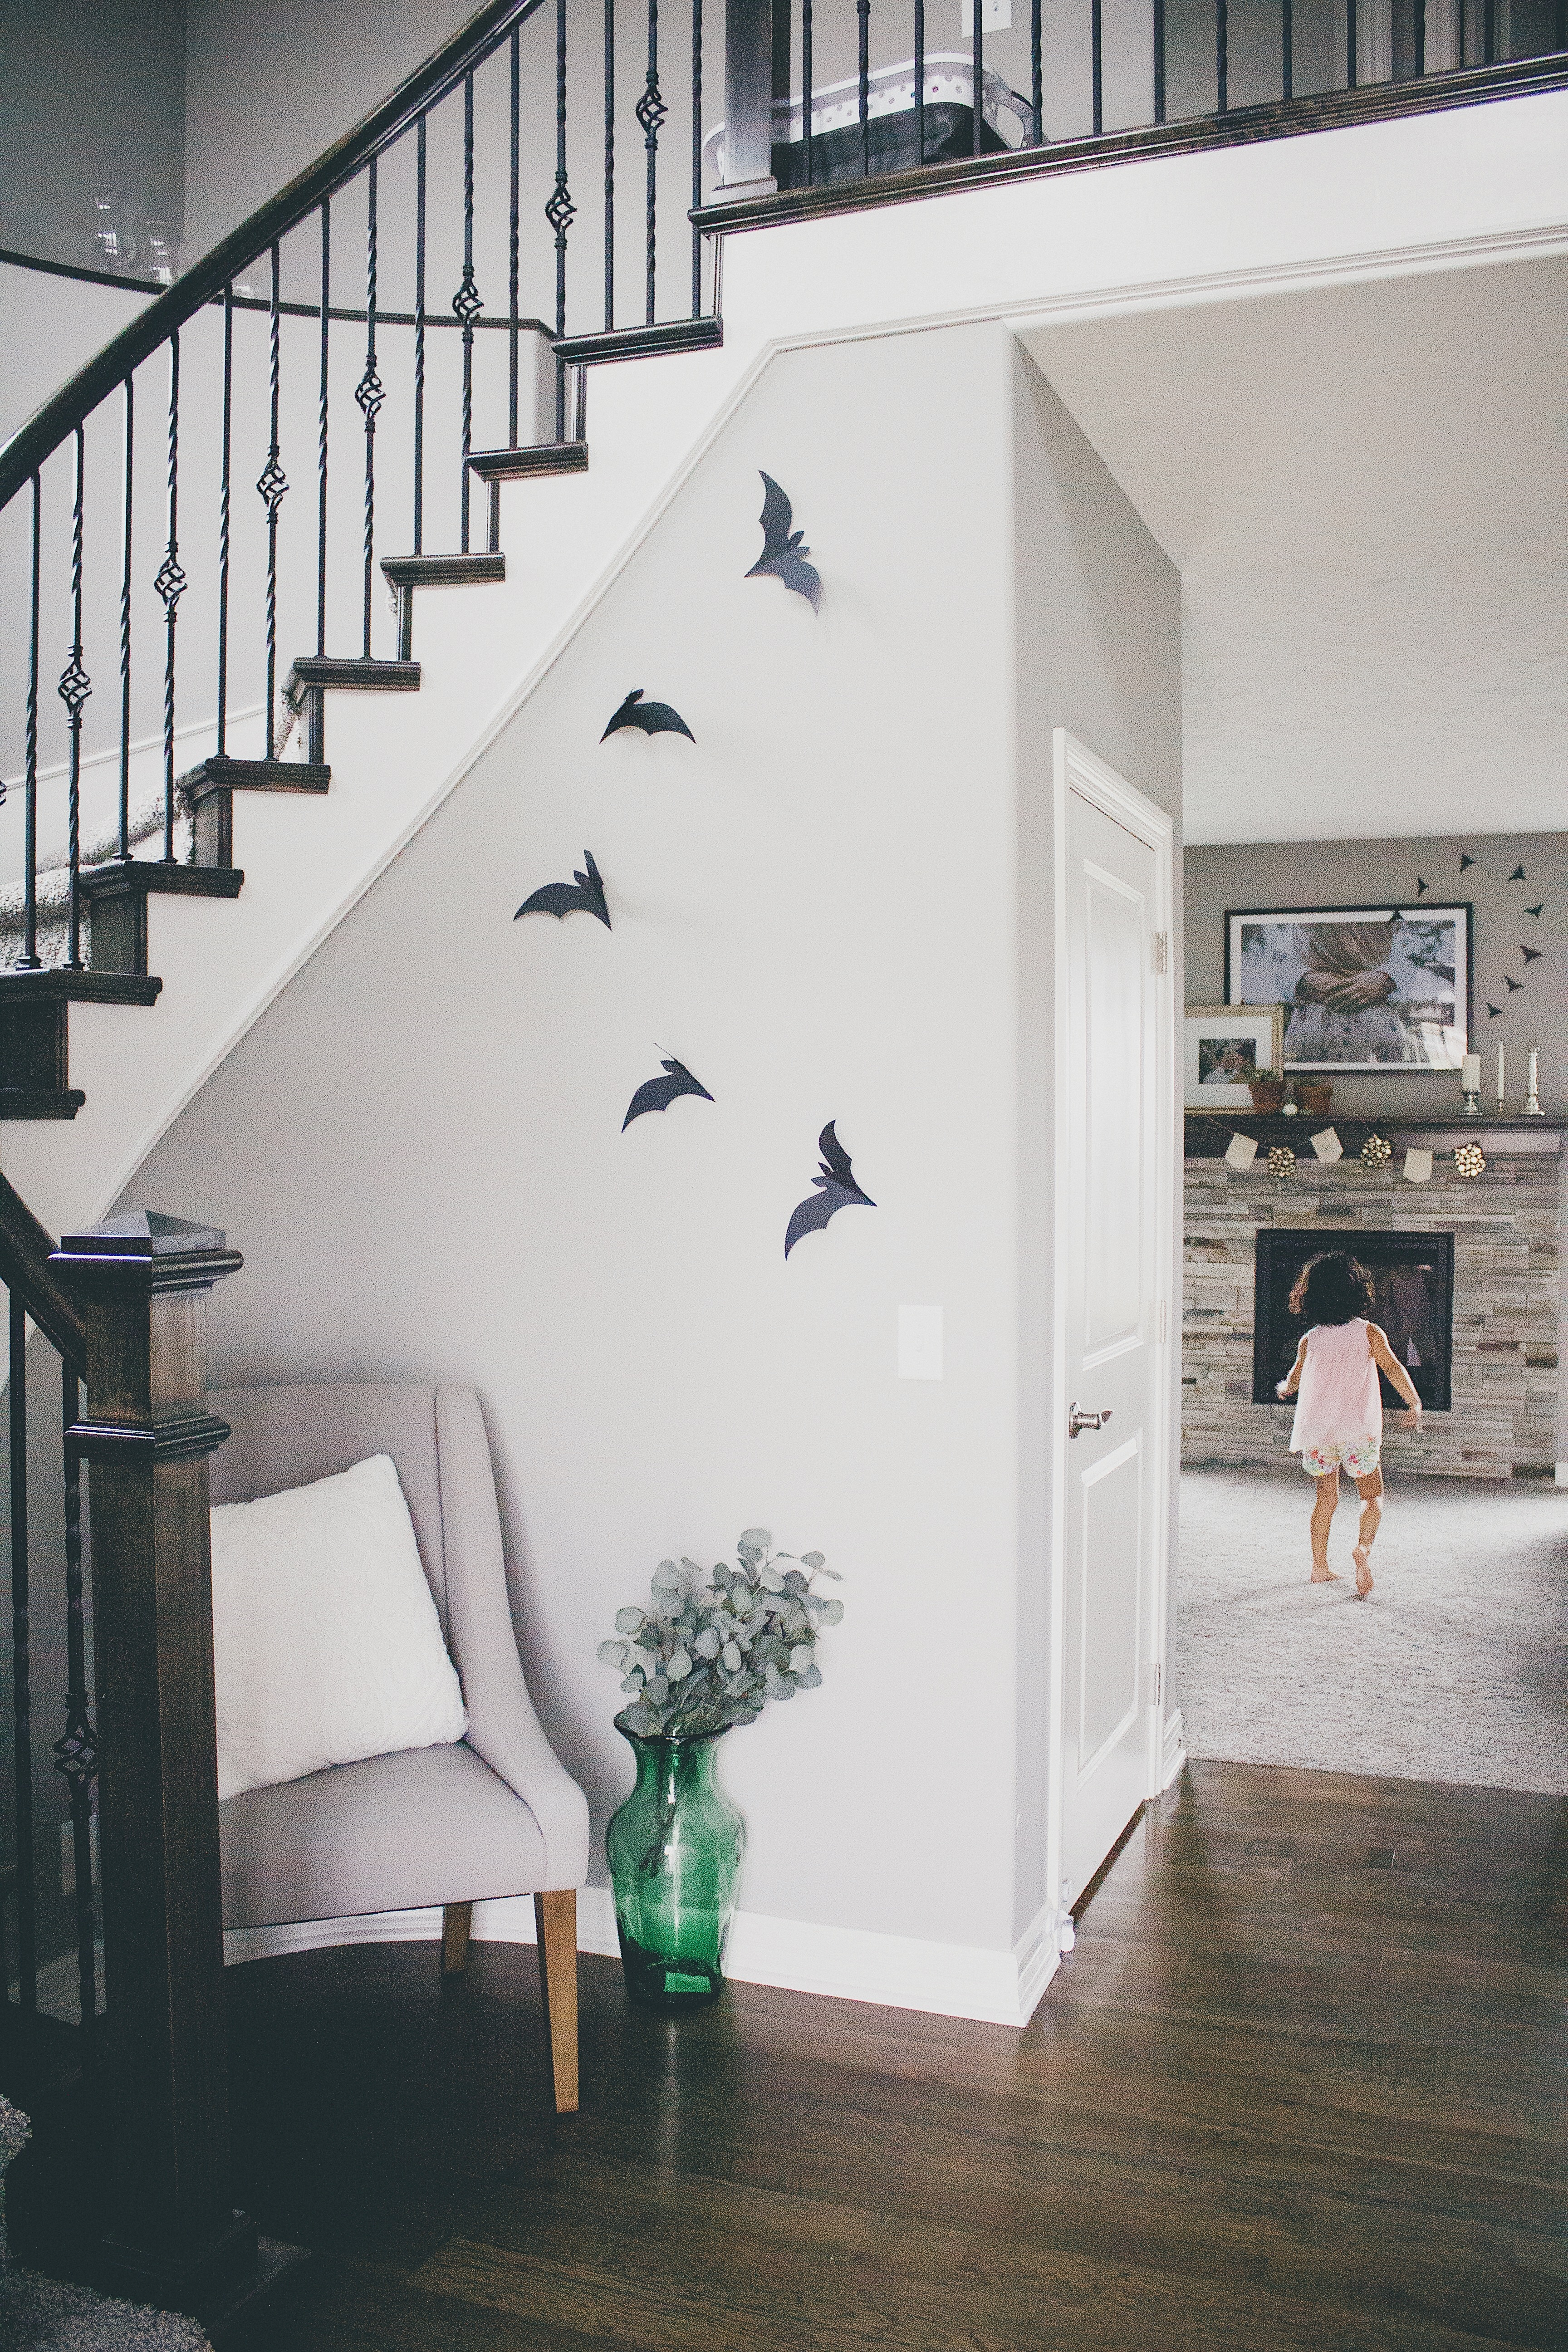 GETTING FESTIVE | DIY PAPER BATS - Ale & Tere | A lifestyle blog on residential spiral stairs, use stairs, one open side stairs, do it yourself stairs, construction stairs, home stairs, remodel stairs, floor plans with stairs, calculator stairs, outdoor stairs, make stairs, standard rise for stairs, winder stairs, water stairs, model stairs, design stairs, wooden stairs, building stairs, run stairs, basement stairs,